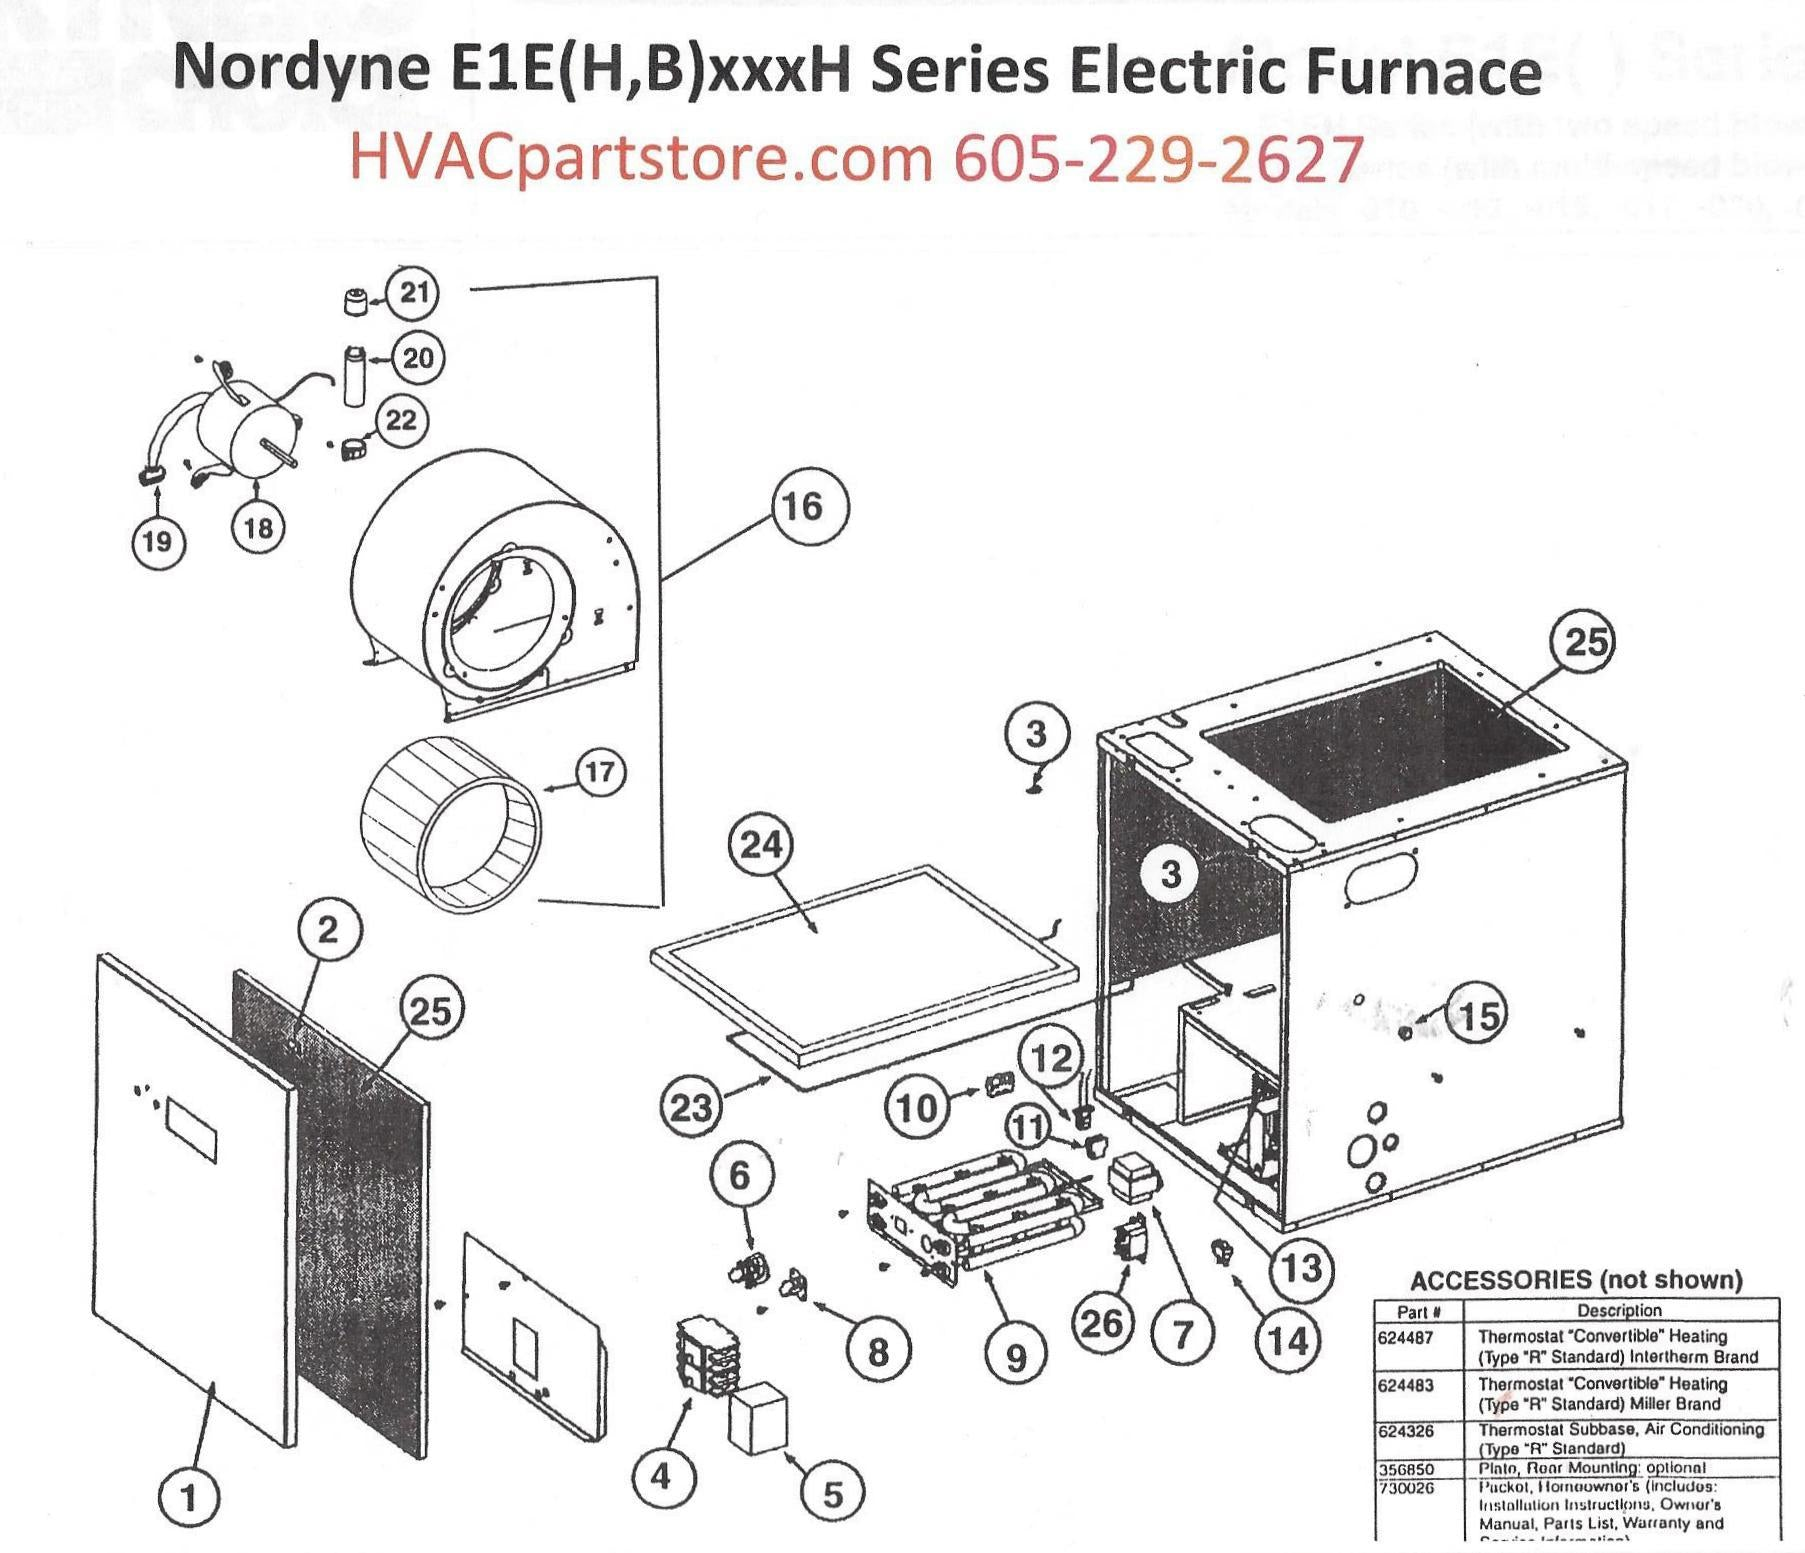 220 circuit breaker wiring diagram with E1eh017h Nordyne Electric Furnace Parts on Diy Sous Vide Heating Immersion Circulator For About 75 as well Double Wide Mobile Home Wiring furthermore Wiring furthermore 240 Volt Wiring Diagram together with Baldor Reliance Industrial Motor Wiring Diagram.